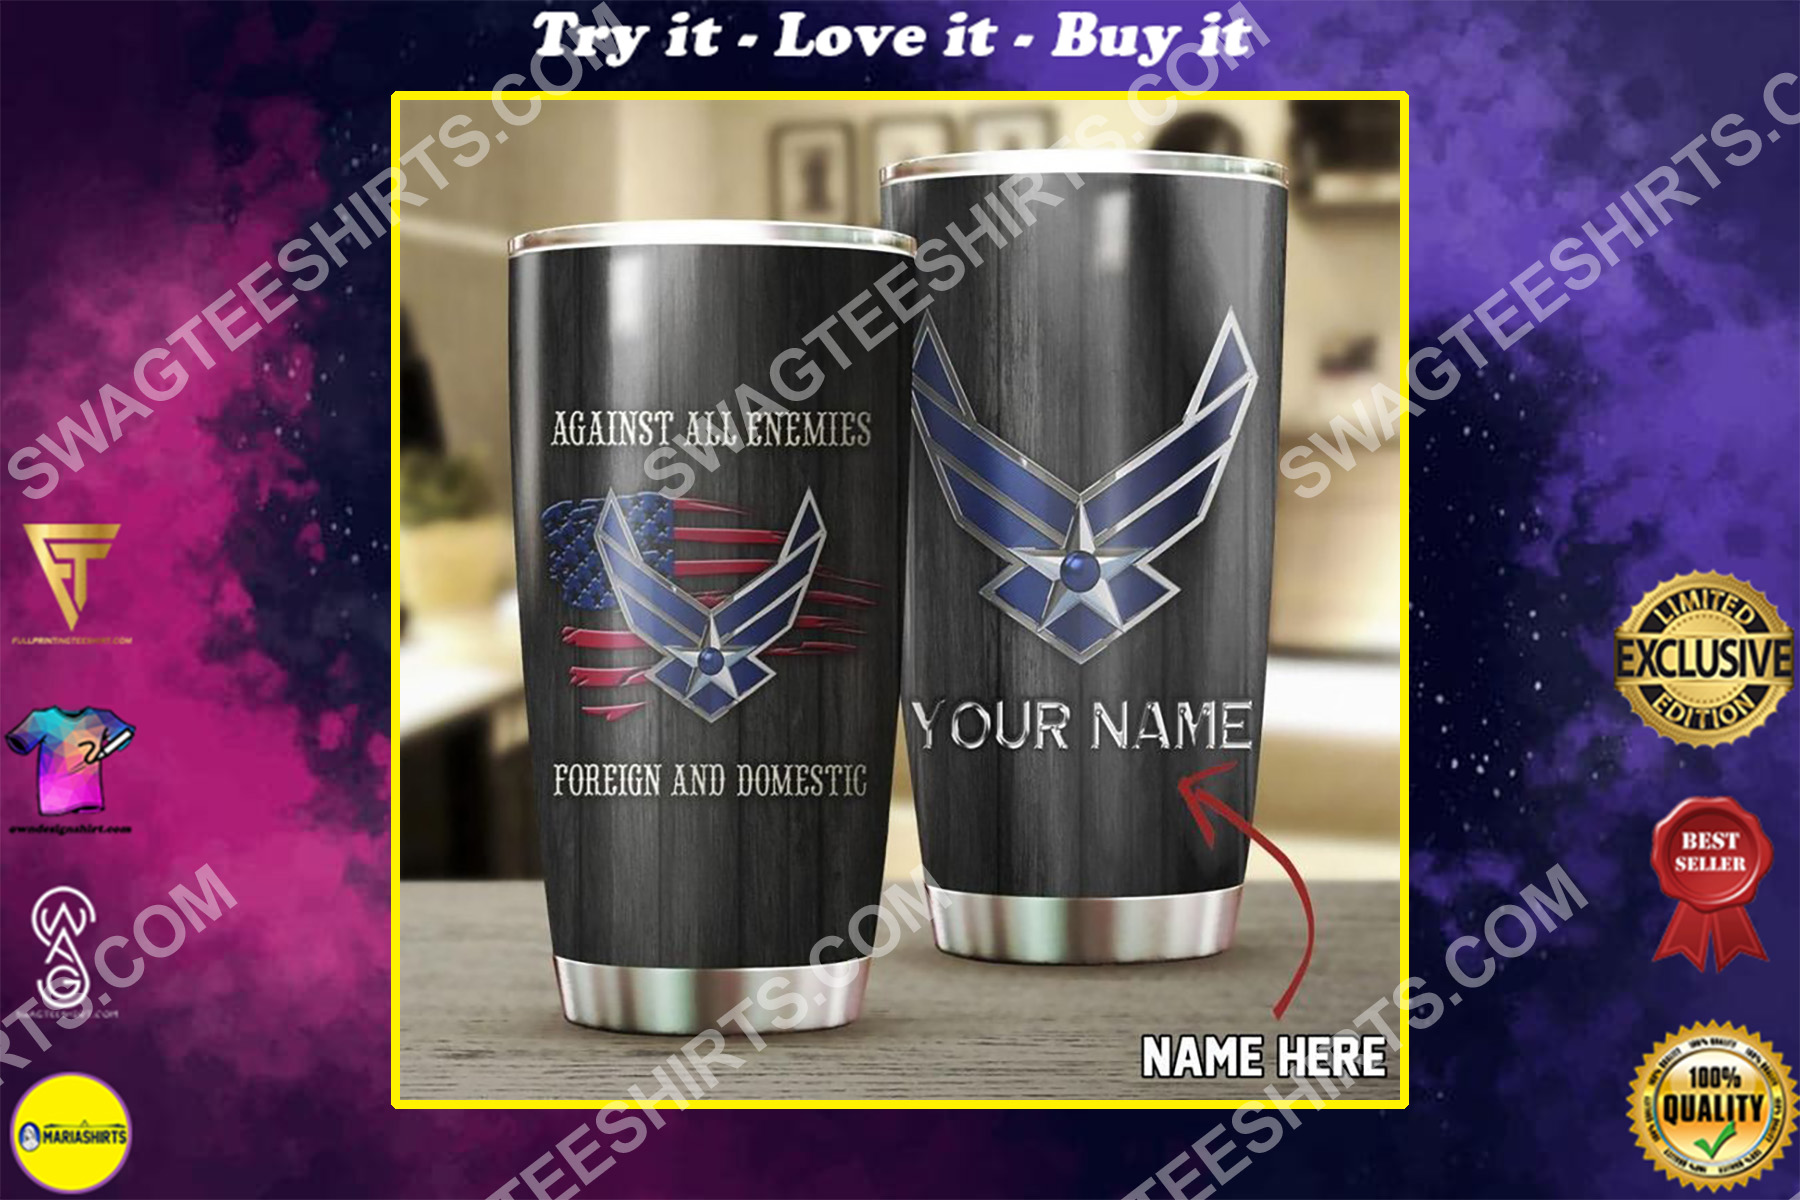 custom name us air force against all enemies all over printed stainless steel tumbler